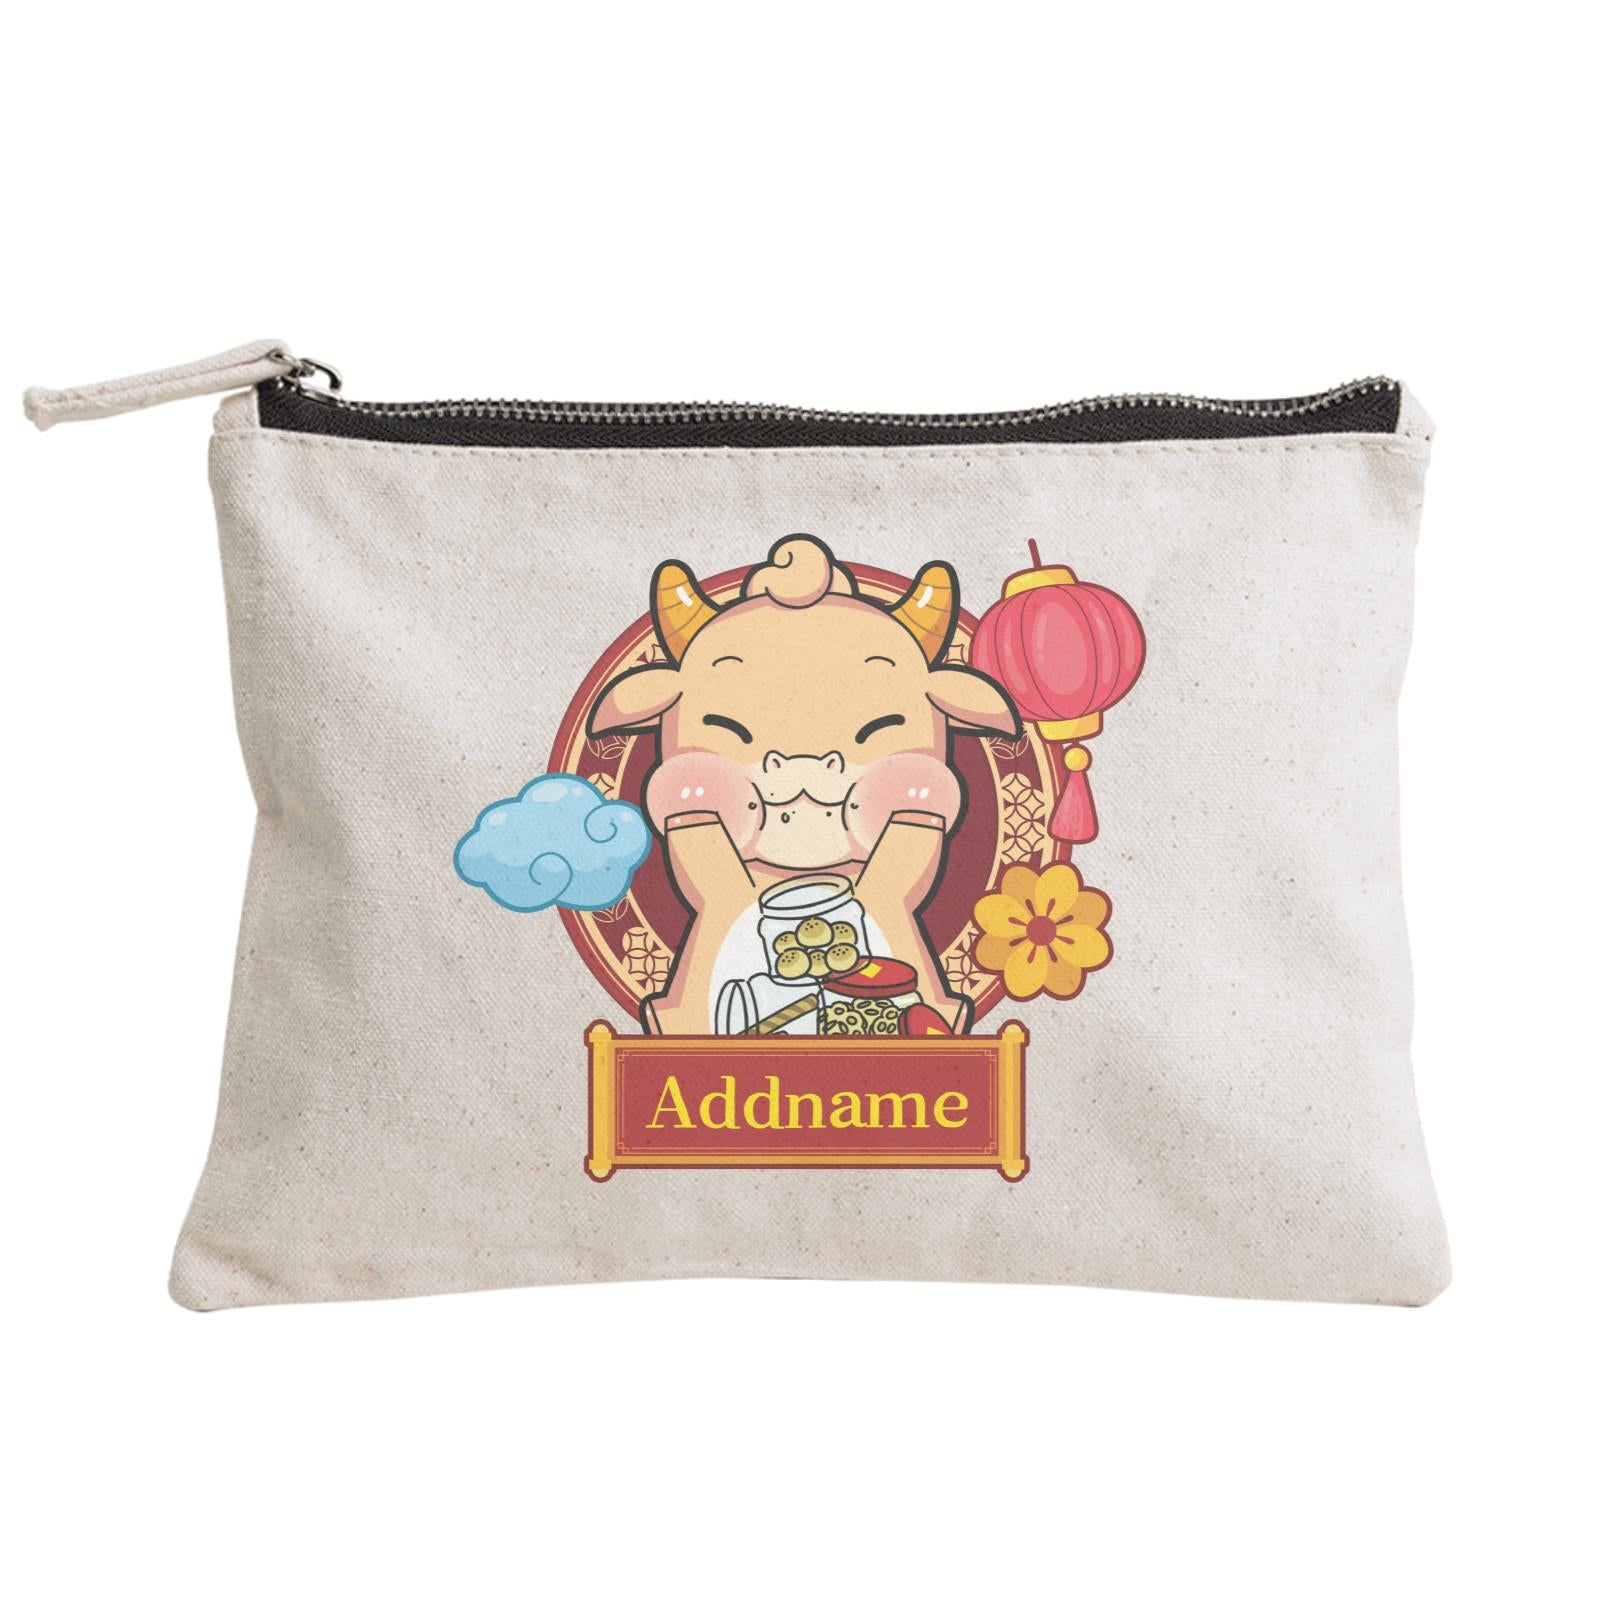 [CNY 2021] Golden Cow with New Year Treats Zipper Pouch